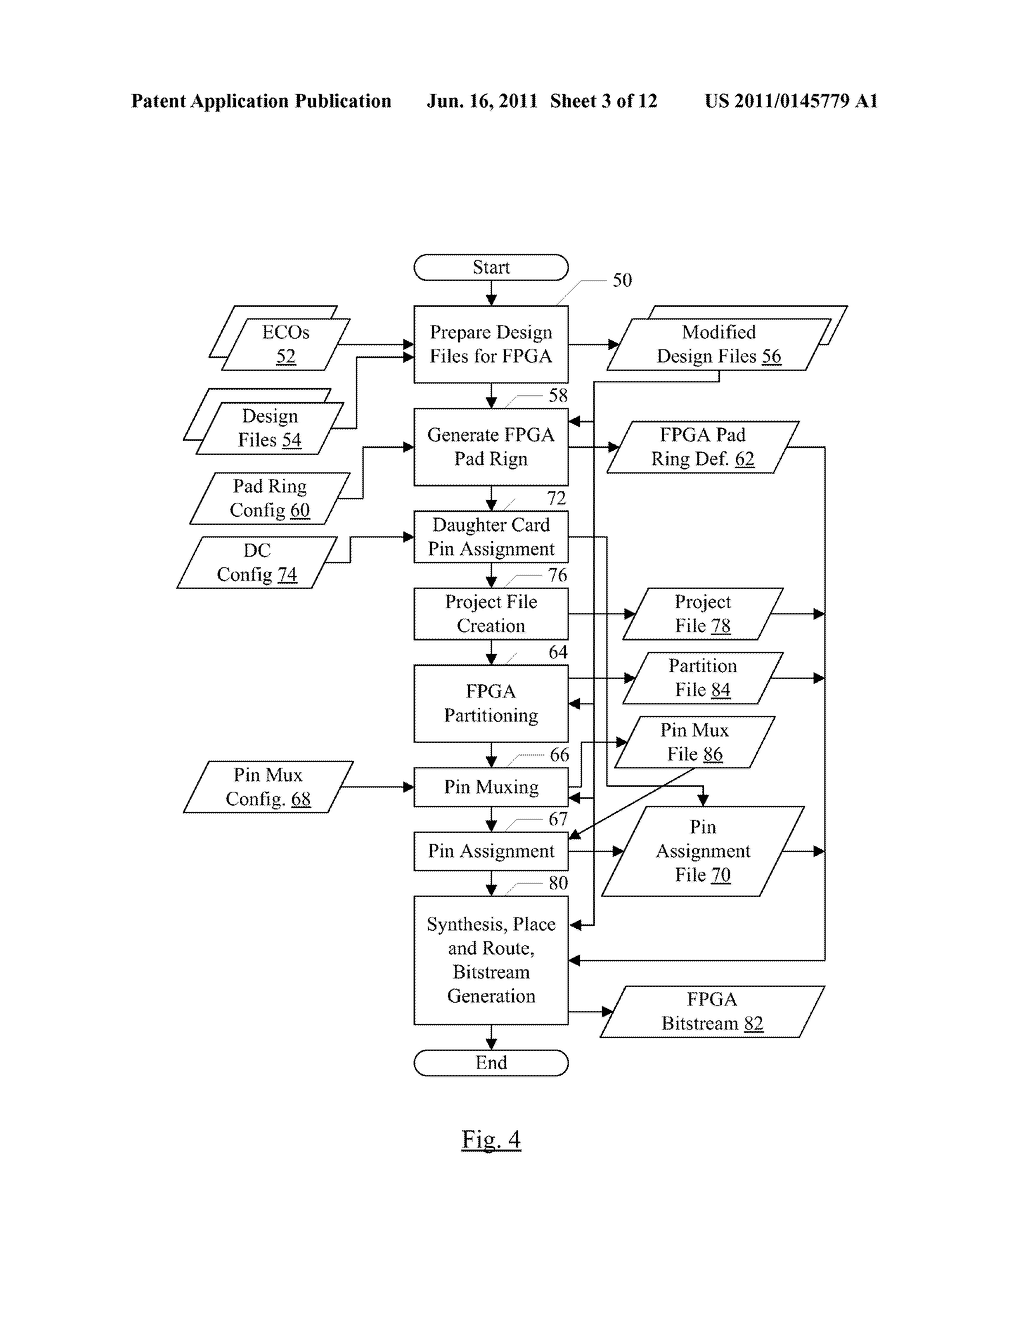 Engineering change order language for modifying integrated circuit engineering change order language for modifying integrated circuit design files for programmable logic device implementation diagram schematic ccuart Images